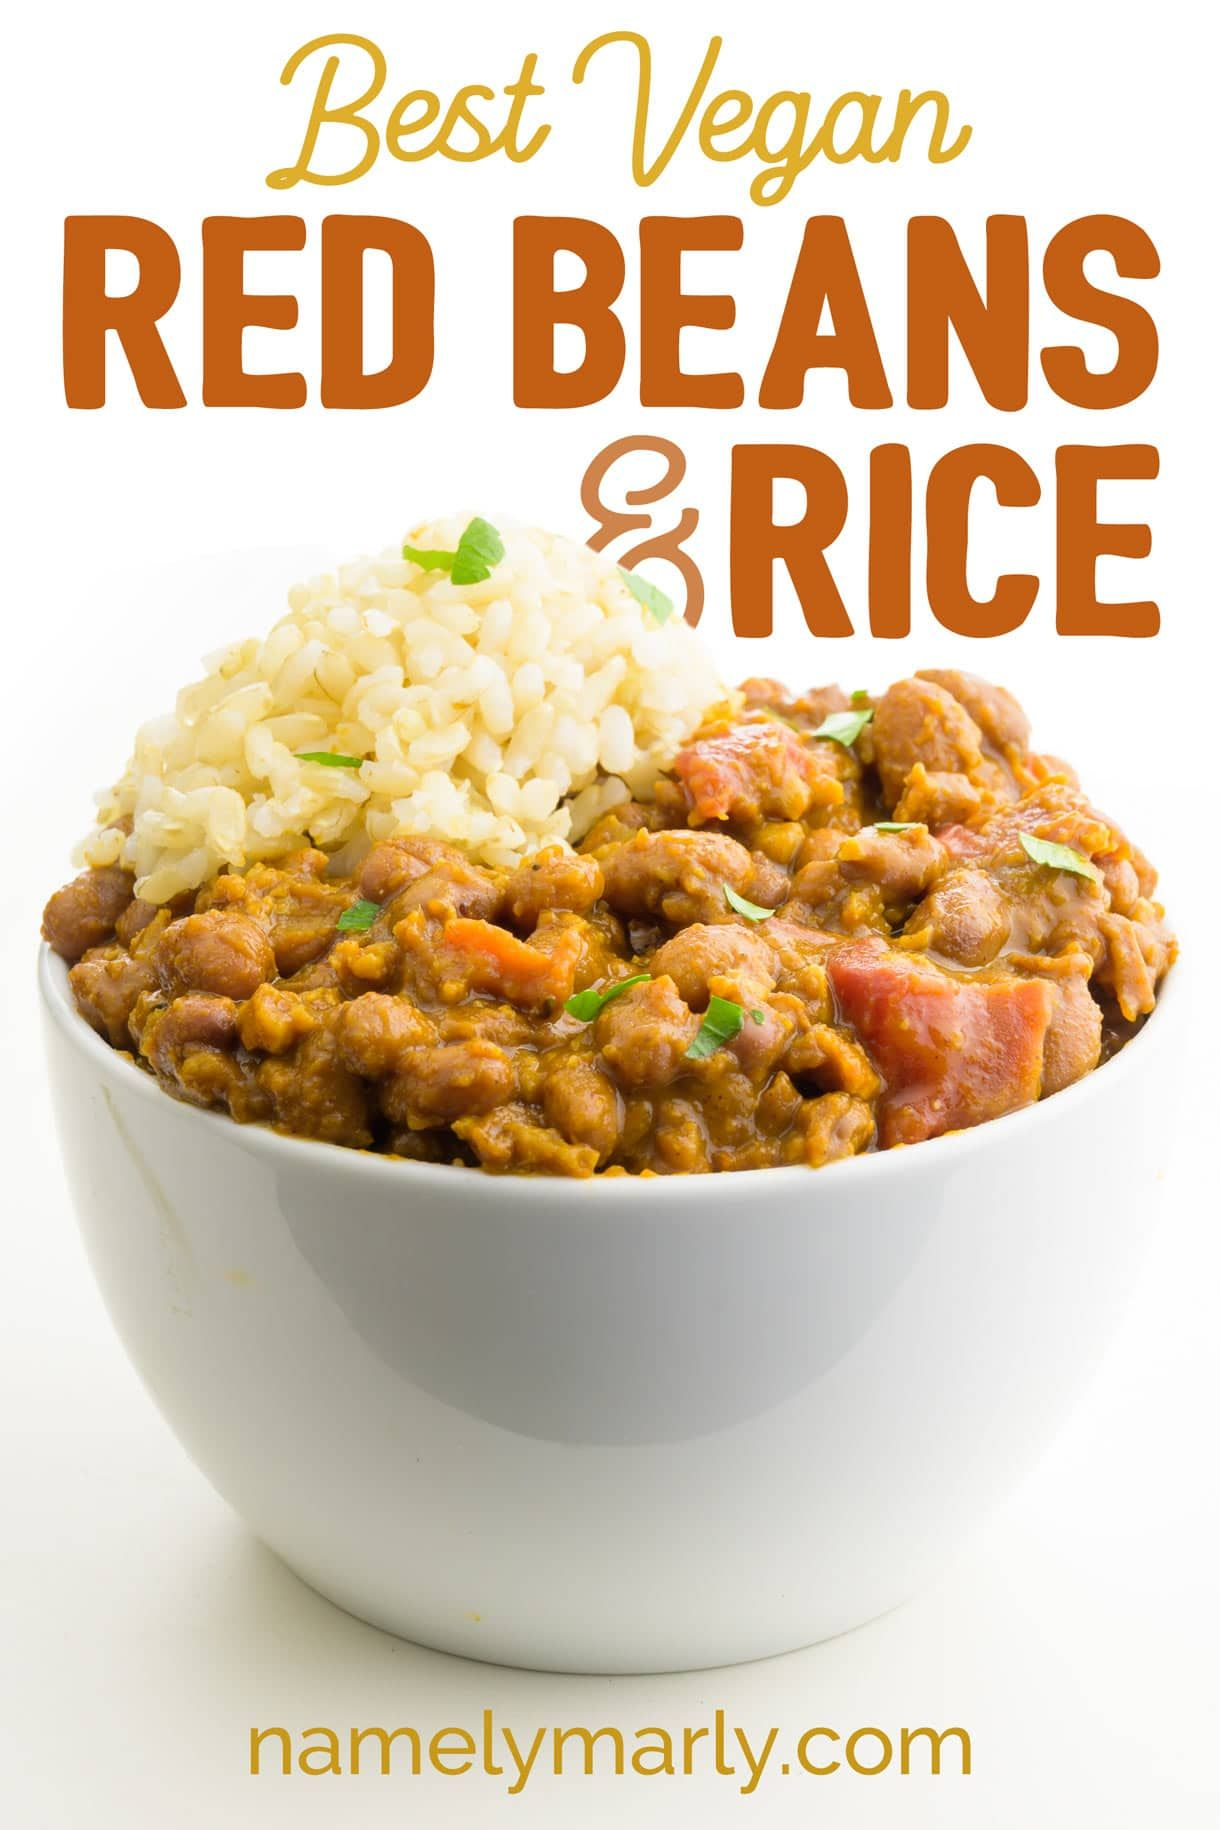 This Vegan Red Beans And Rice Recipe Could Be Described As A Hearty Comfort Food Serve This Vegetarian Red Beans And Rice With With Cornbread With Images Vegan Comfort Food